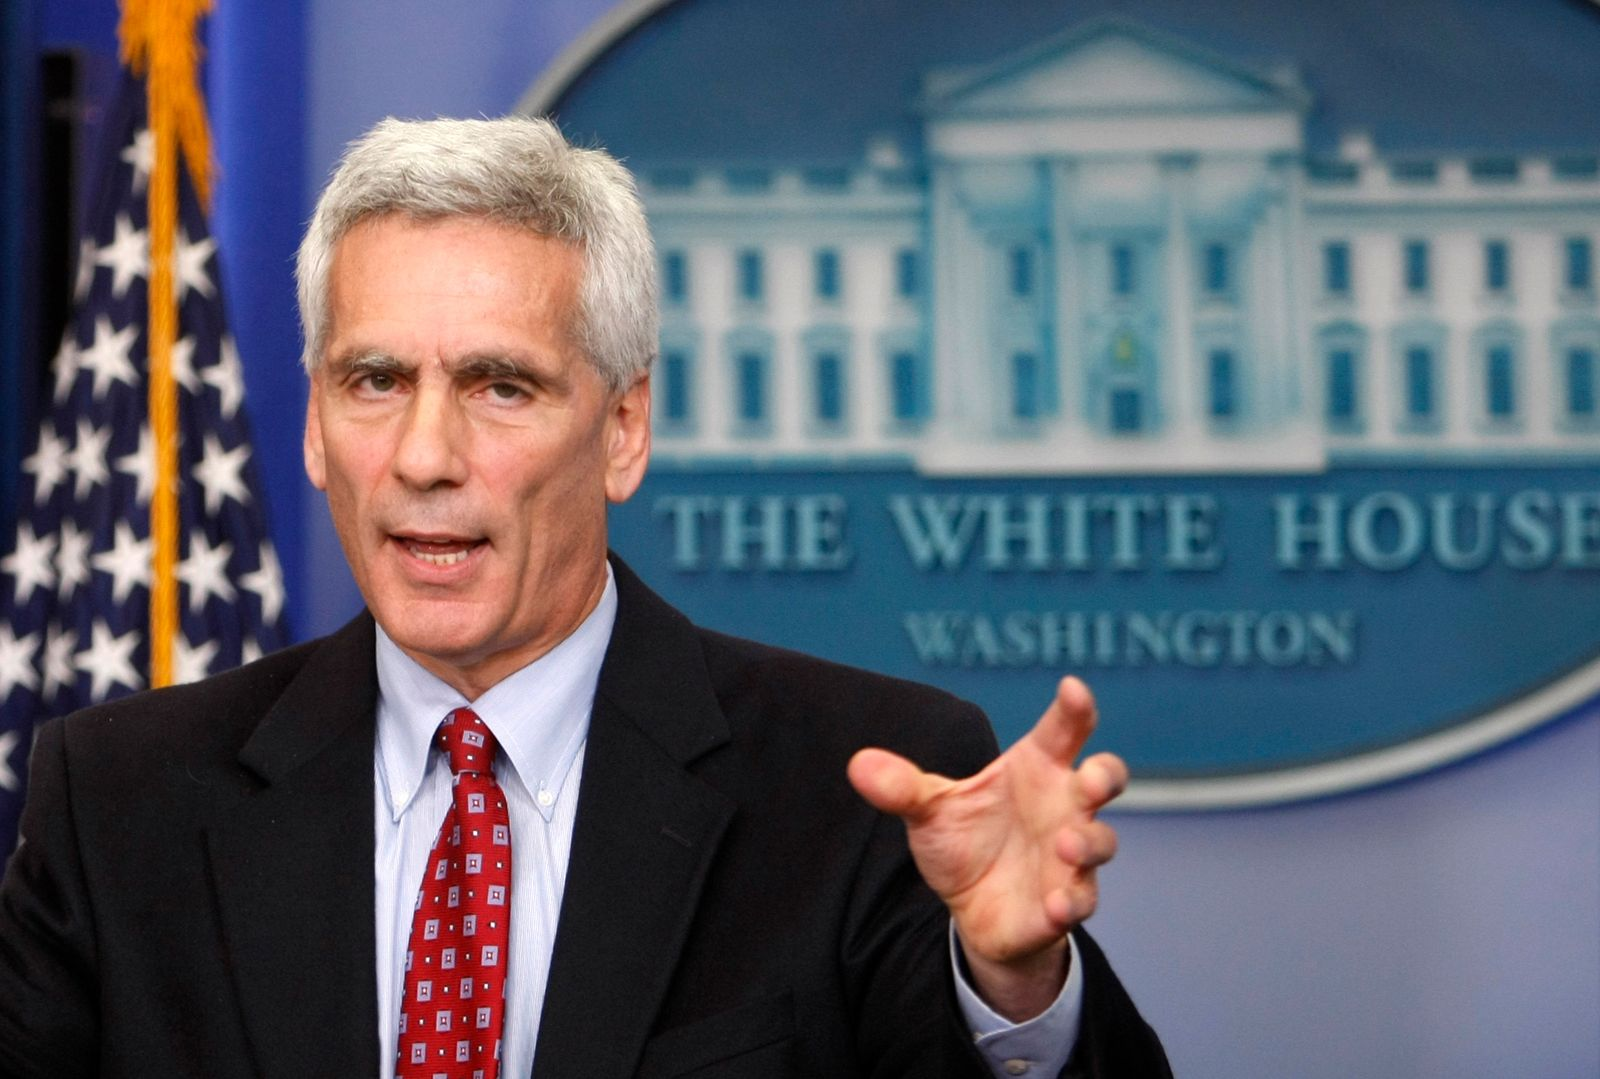 Bernstein, chief economic advisor to U.S. Vice President Biden, speaks during press briefing in Washington